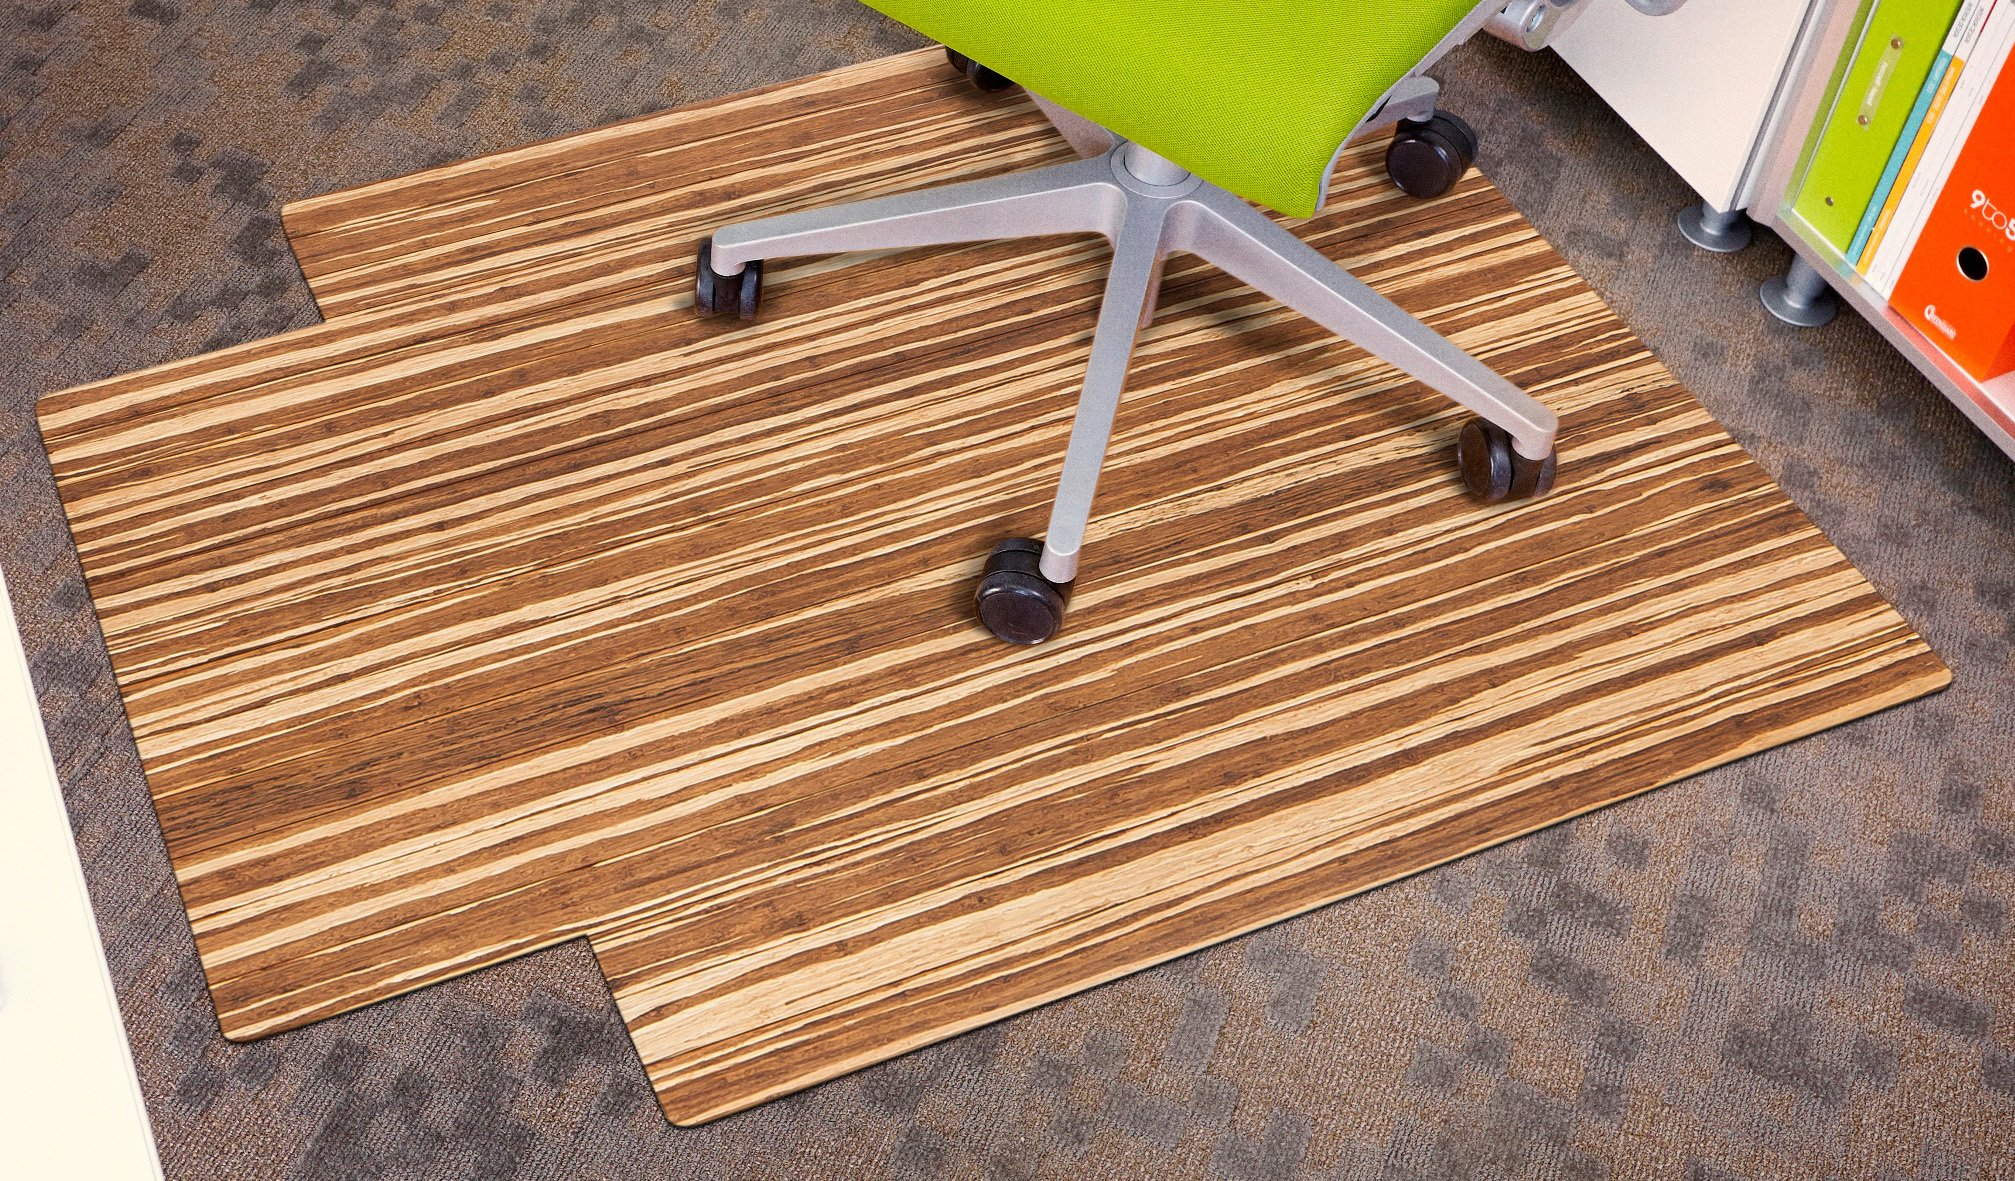 Anji Mountain AMB24060 Strand-Woven Wood Roll-Up Chairmat with lip, 36 x 48-Inch